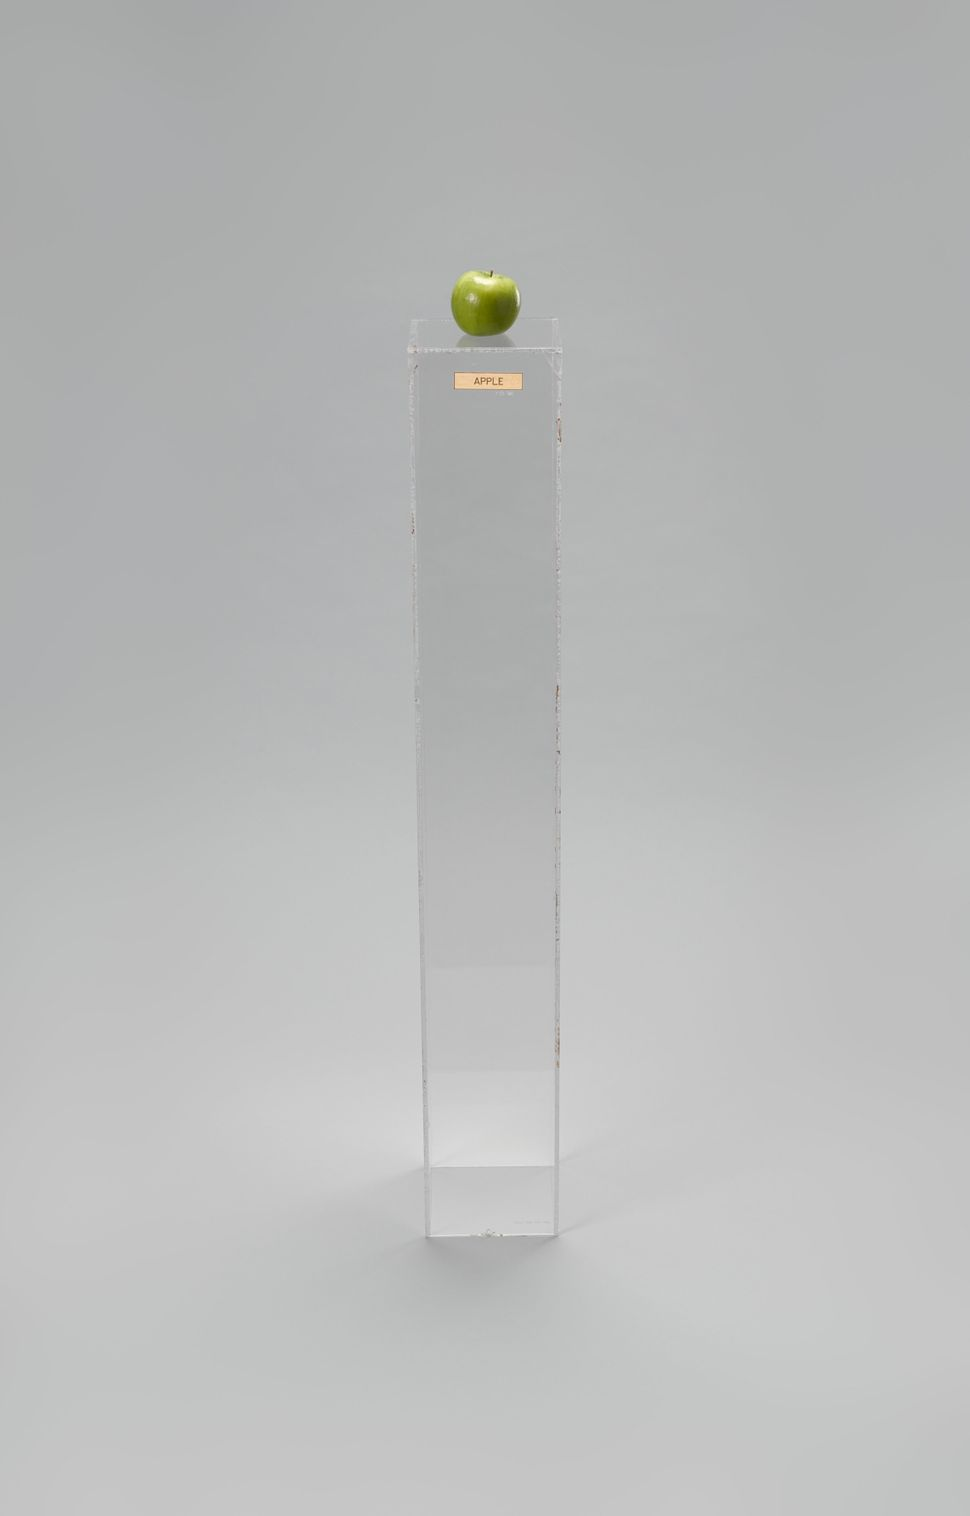 Yoko Ono (Japanese, born 1933) Apple. 1966. Plexiglas pedestal, brass plaque, apple, 45 × 6 11/16 × 6 15/16″ (114.3 × 17 × 17